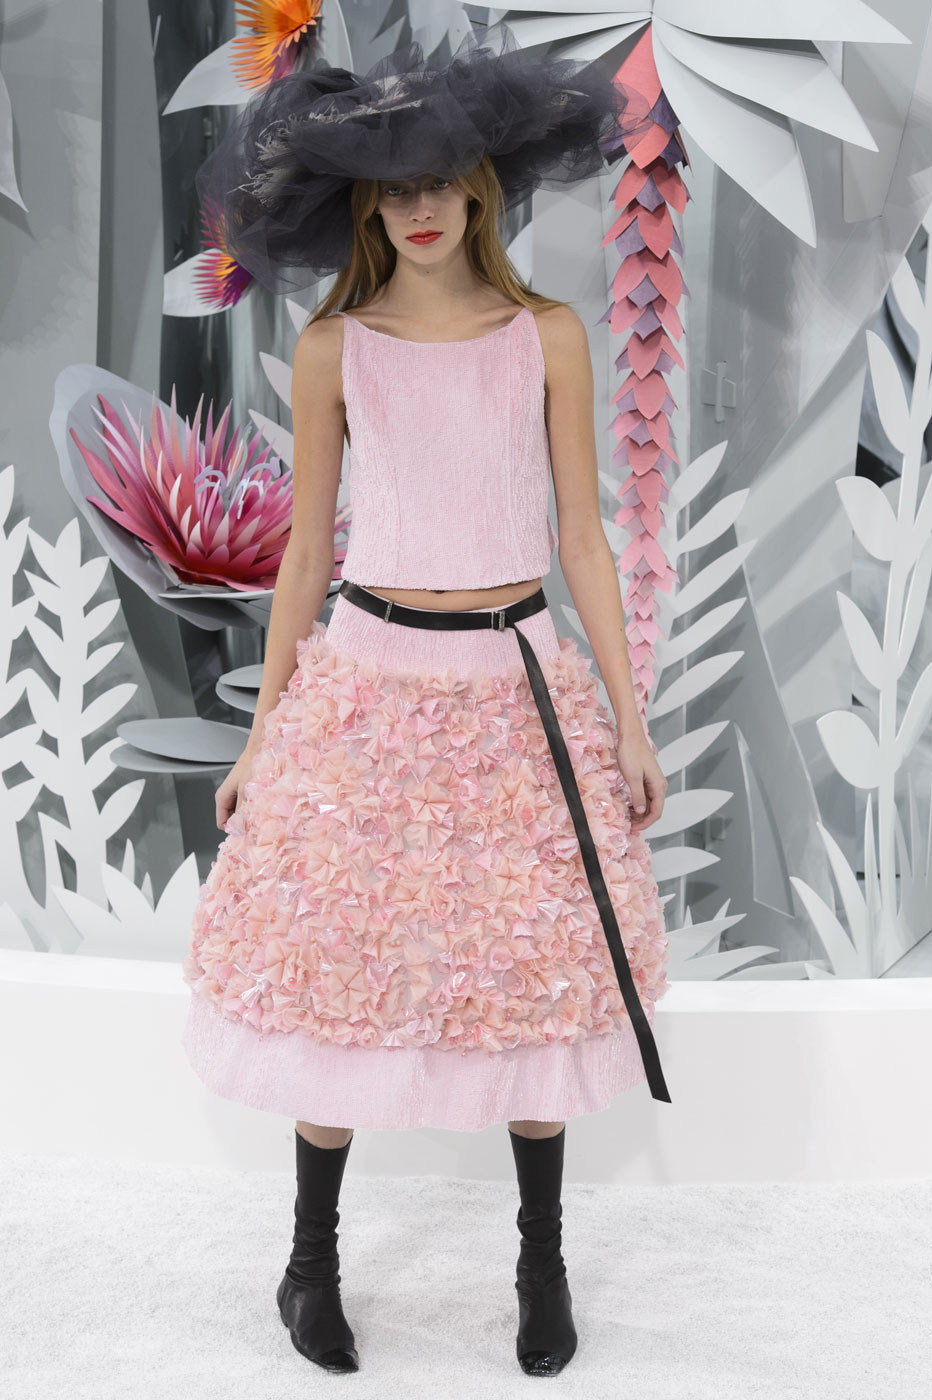 Chanel-fashion-runway-show-haute-couture-paris-spring-summer-2015-the-impression-149